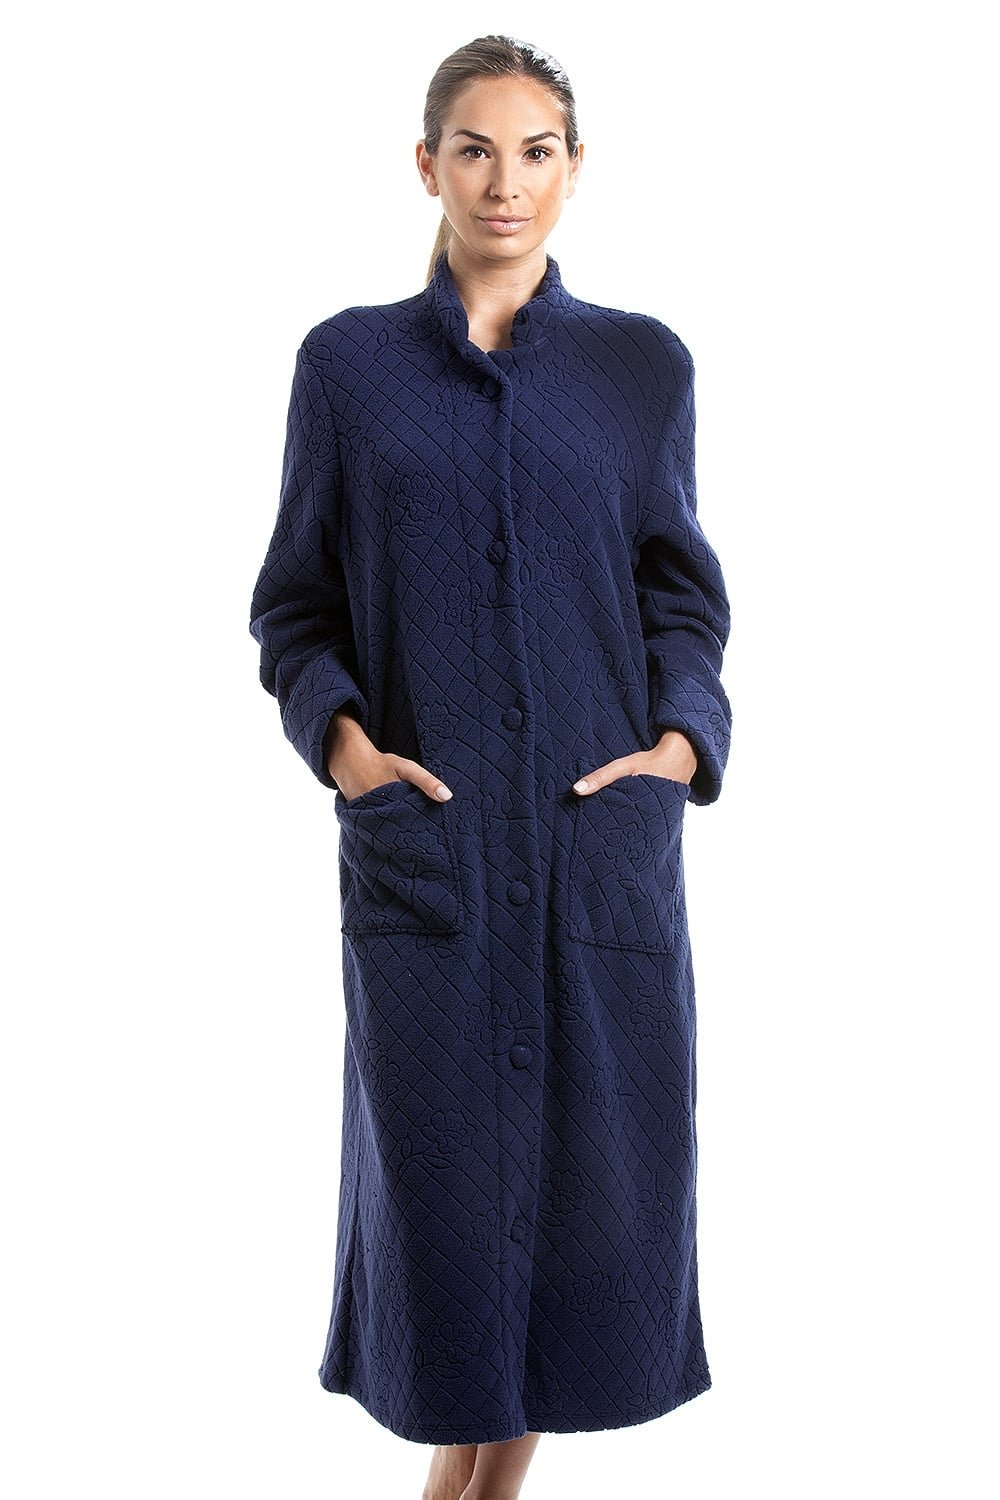 Camille Navy Soft Fleece Floral Full Length Button up Housecoat 8/10 Blue